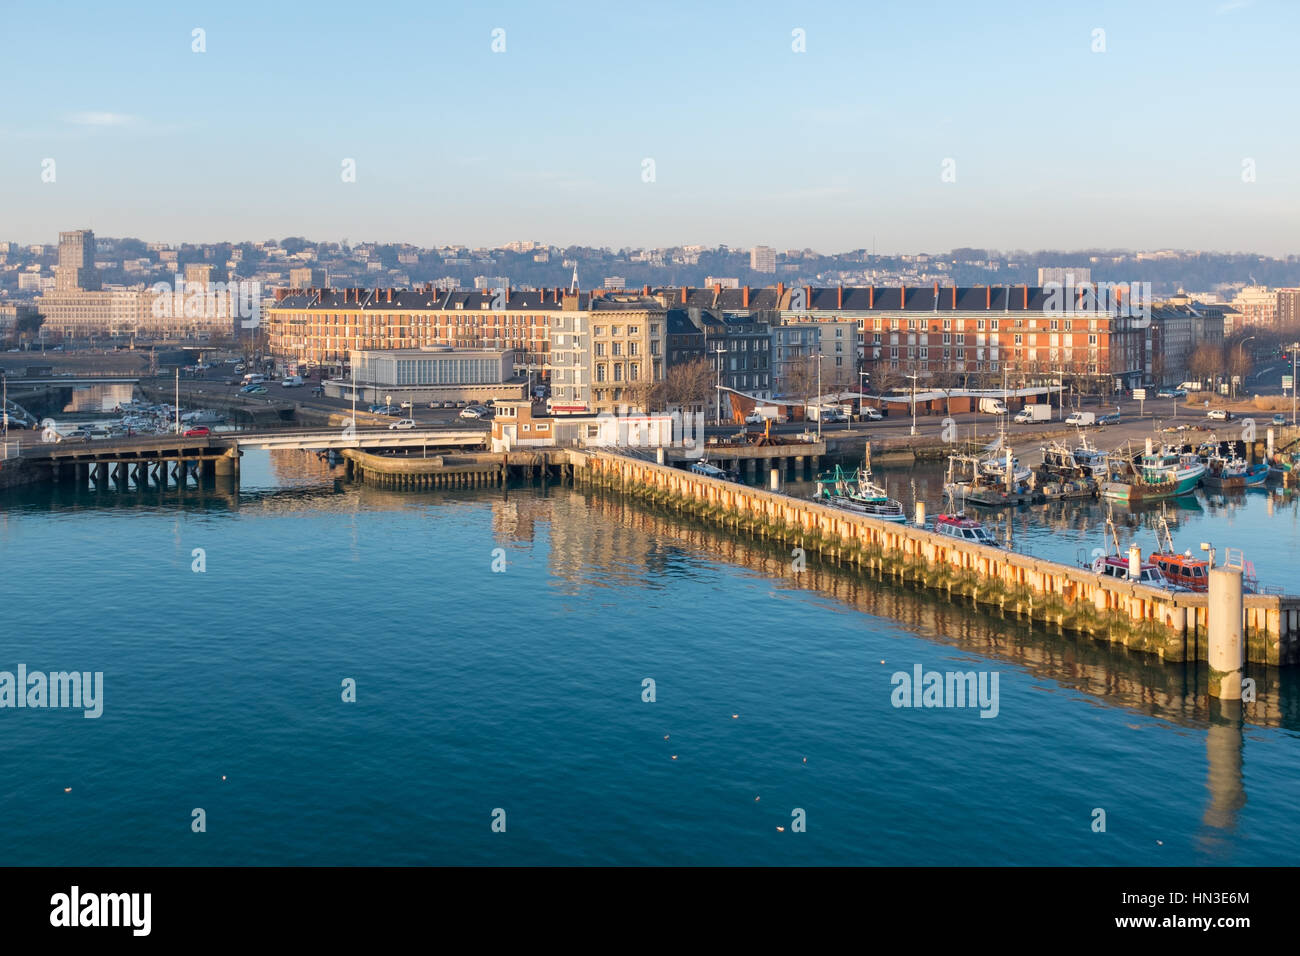 The port of Le Havre viewed from the deck of a departing Brittany Ferries car ferry - Stock Image